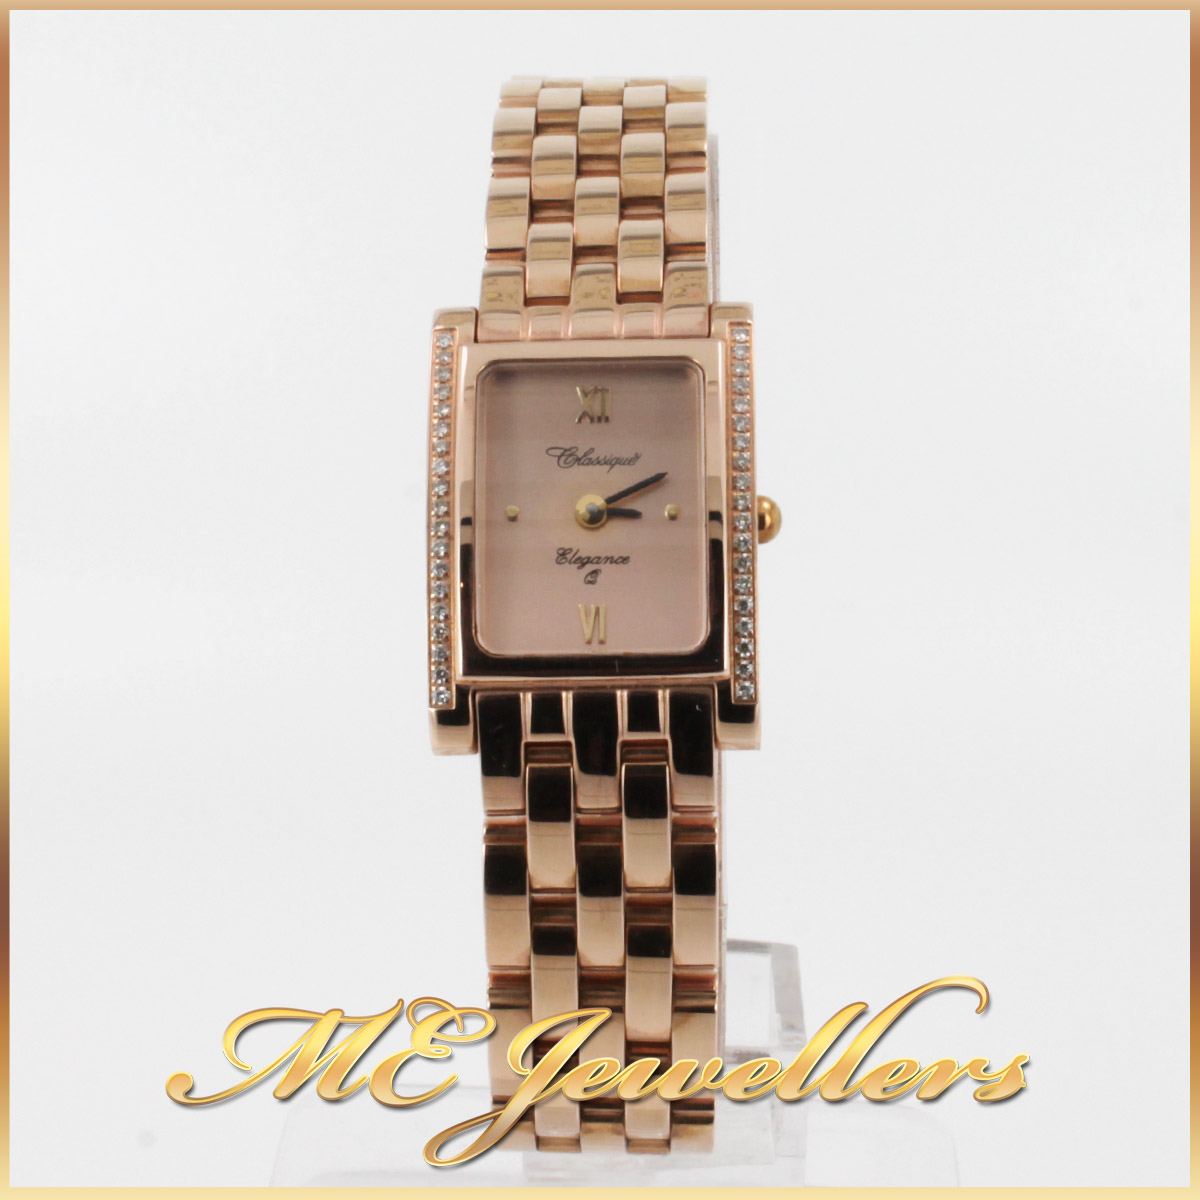 2057 Classique Ladies Watch Diamond Bezel main